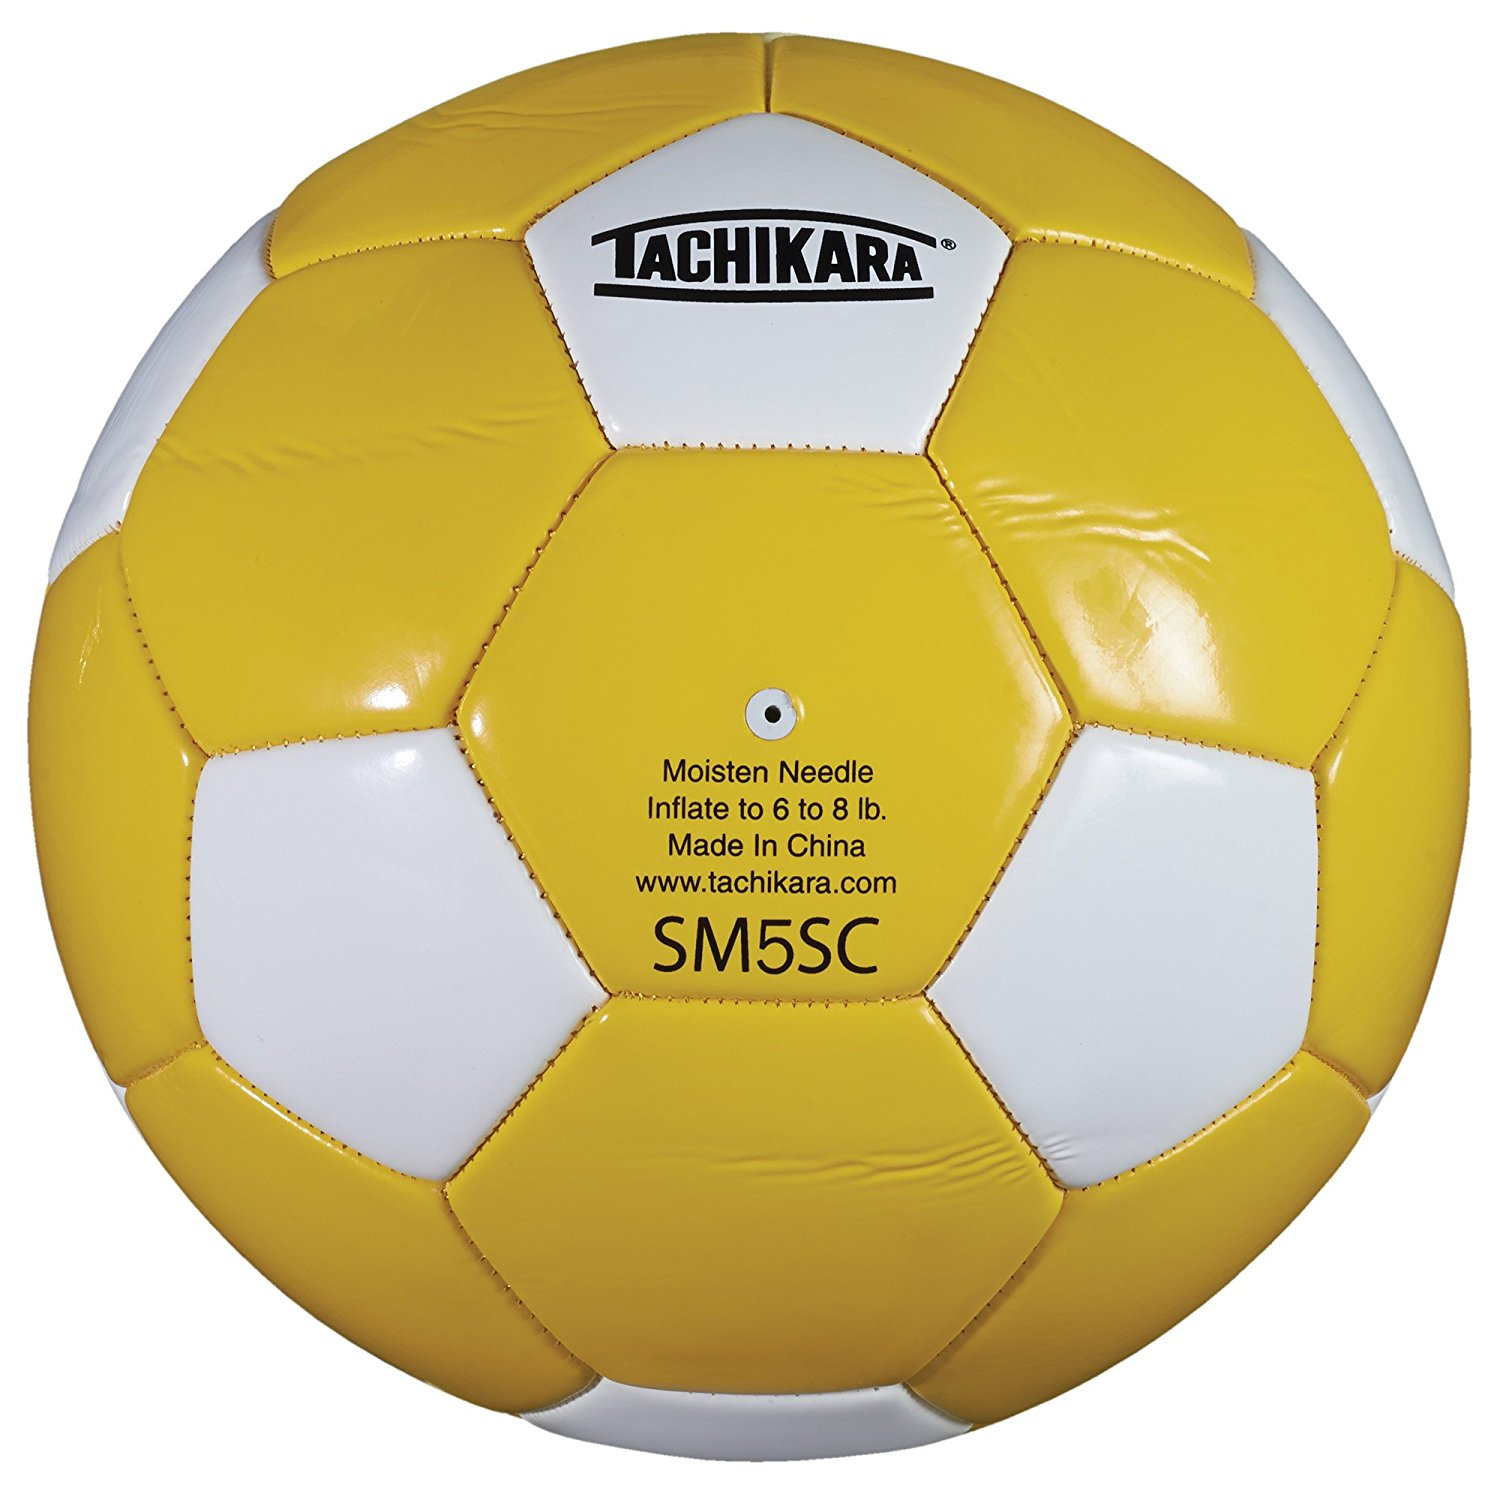 SM5SC Soccer Ball (Size 5), Kelly/White, This ball is sold and shipped deflated. By Tachikara